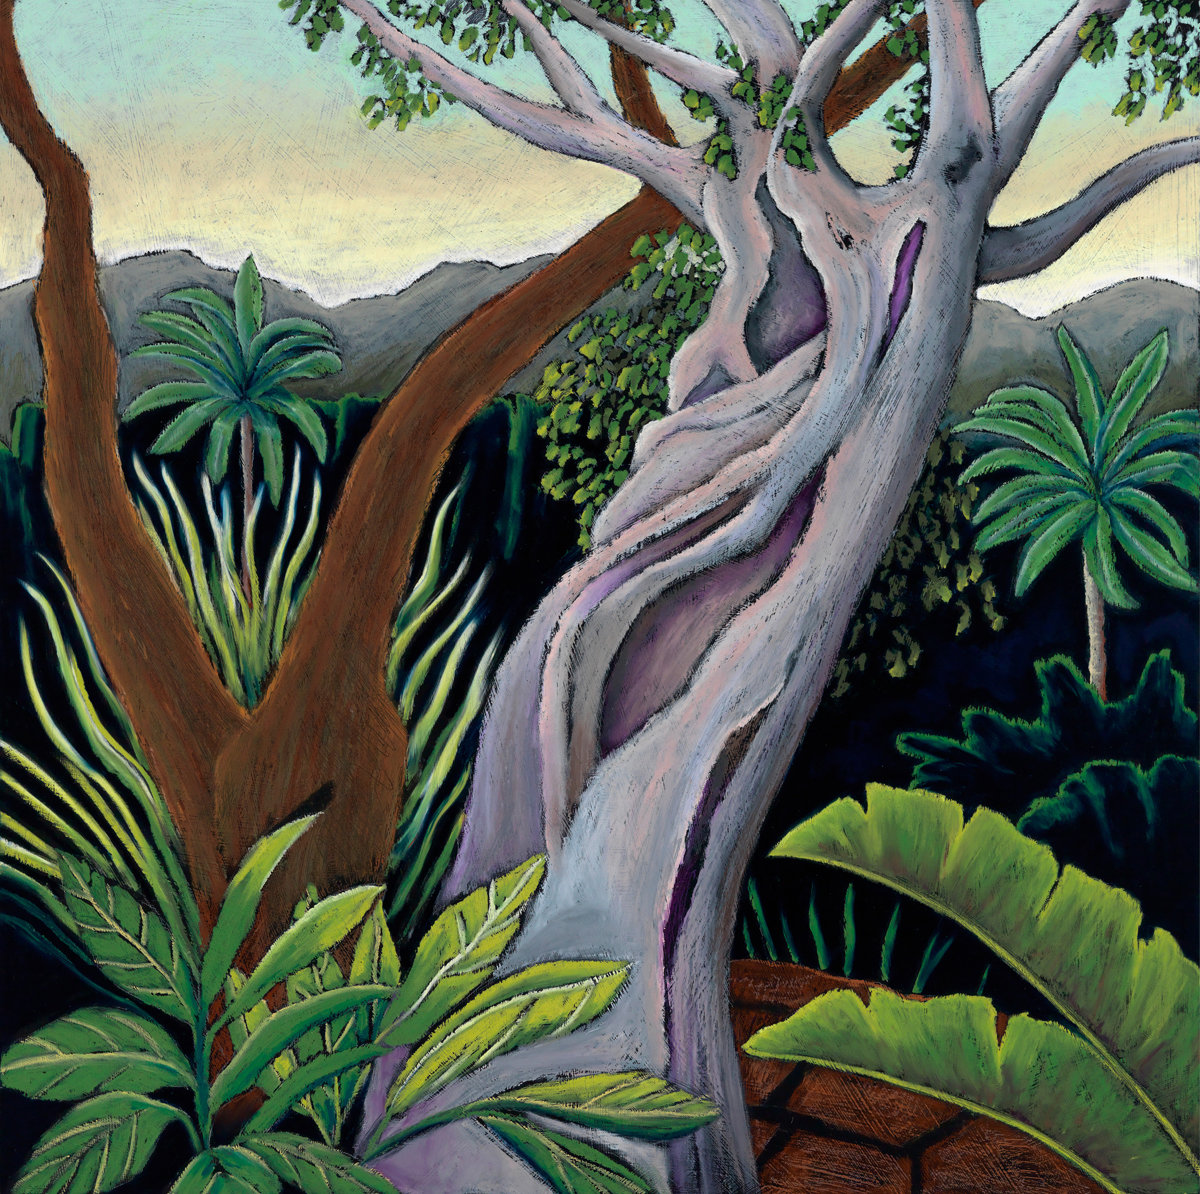 Jungle Trees By Jane Aukshunas Pastel Painting Artful Home